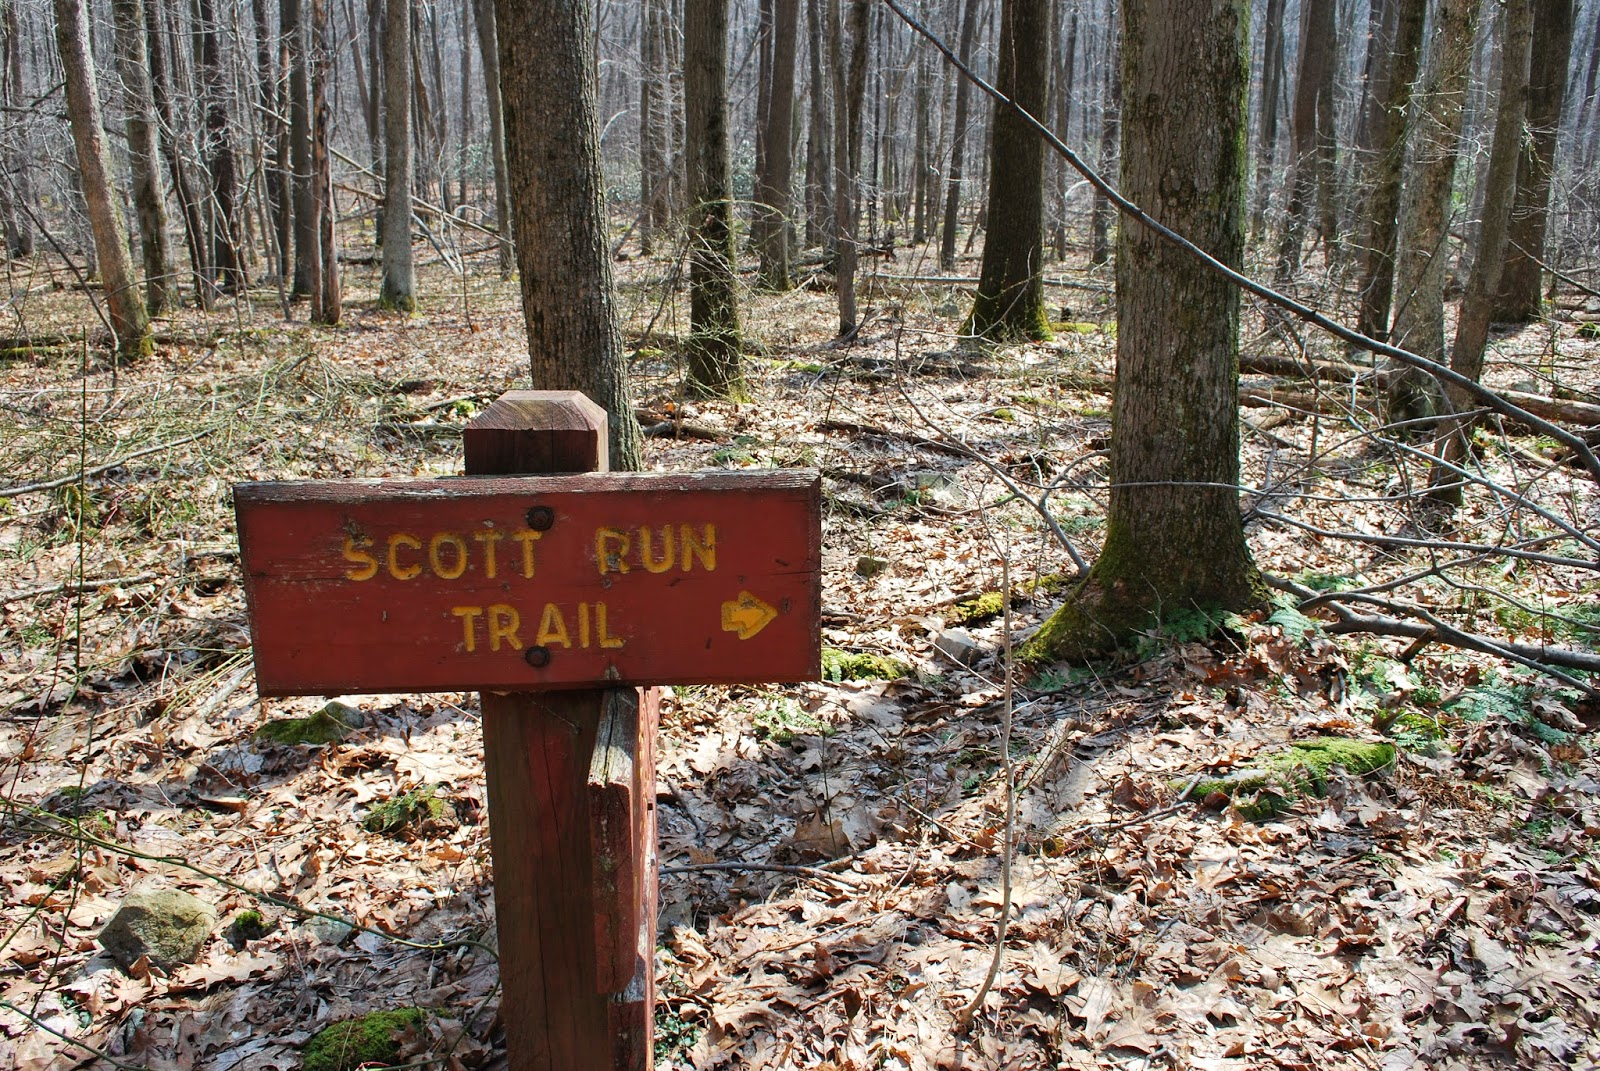 The trail head of Scotts Run Trail at Coopers Rock State Forest